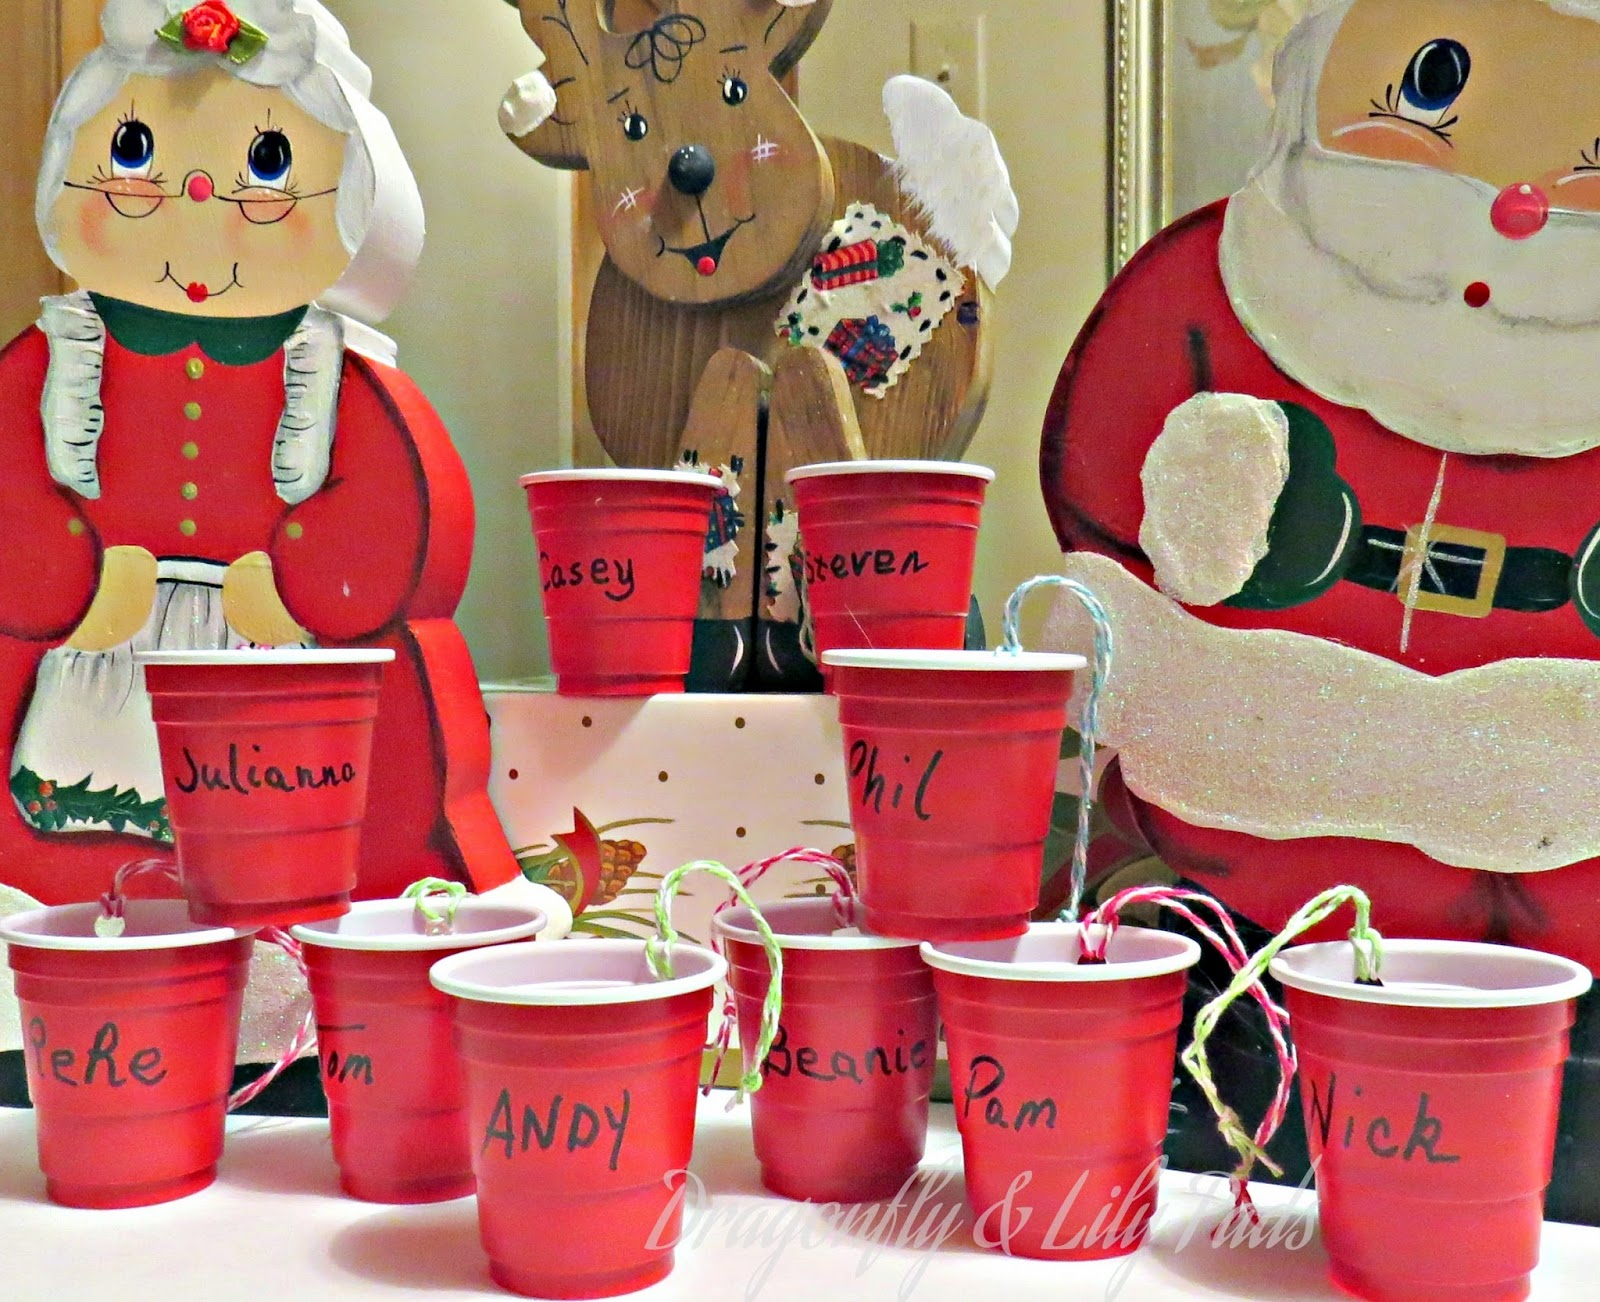 Red Solo Cups Ornaments, Reindeer, Santa Claus, Mrs Claus, Gift Box